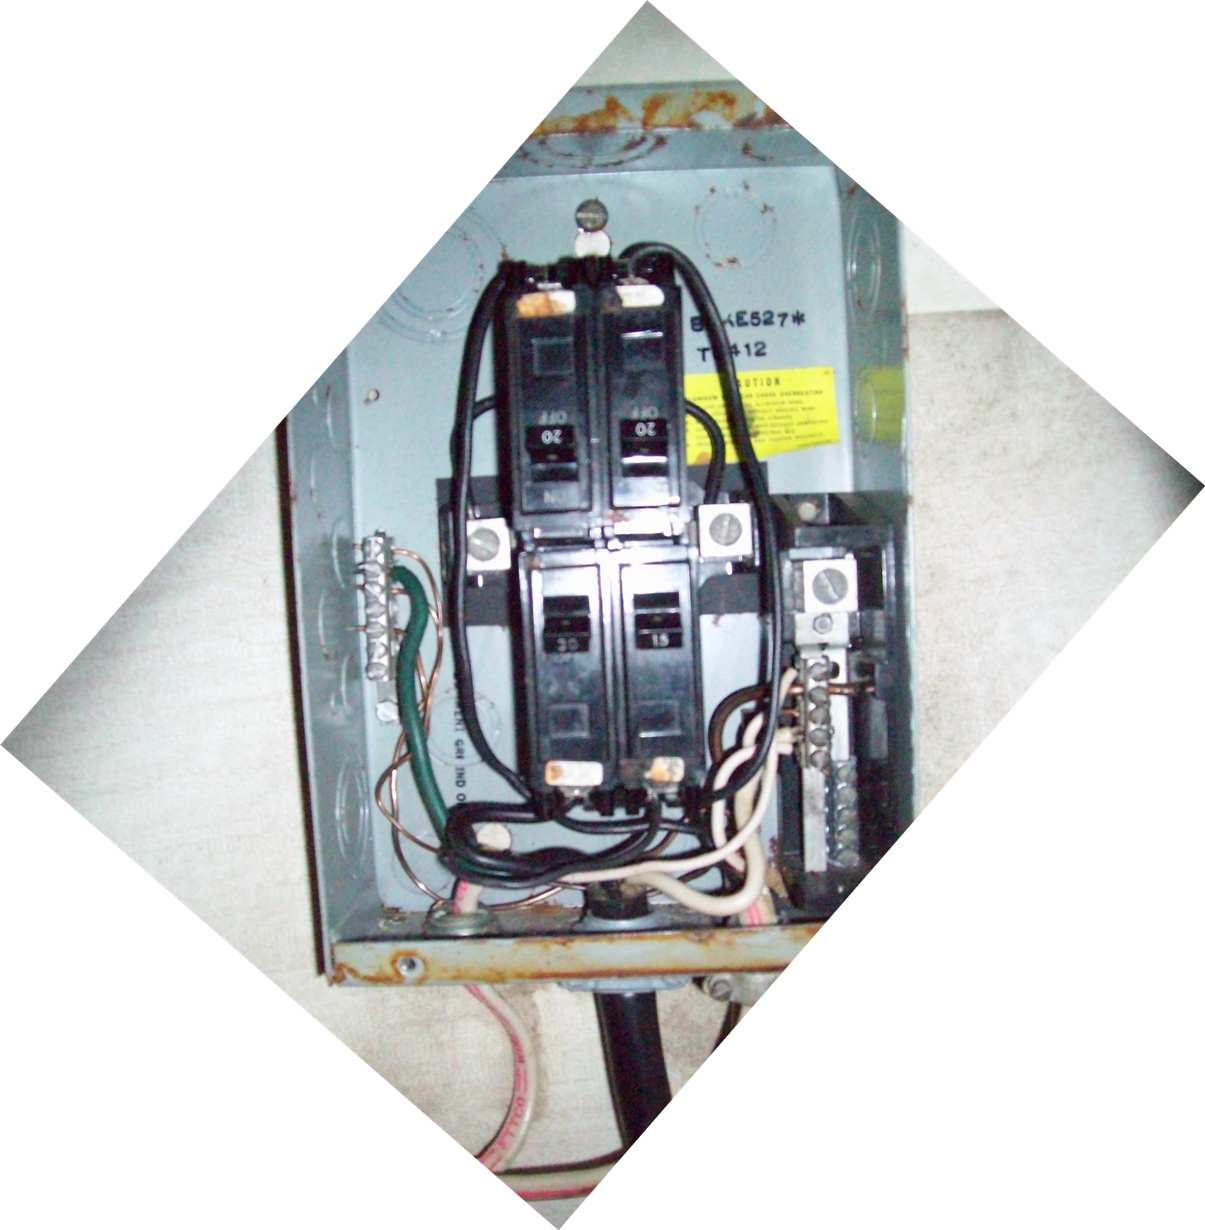 Click image for larger version  Name:power panel as found.jpg Views:67 Size:107.7 KB ID:102863